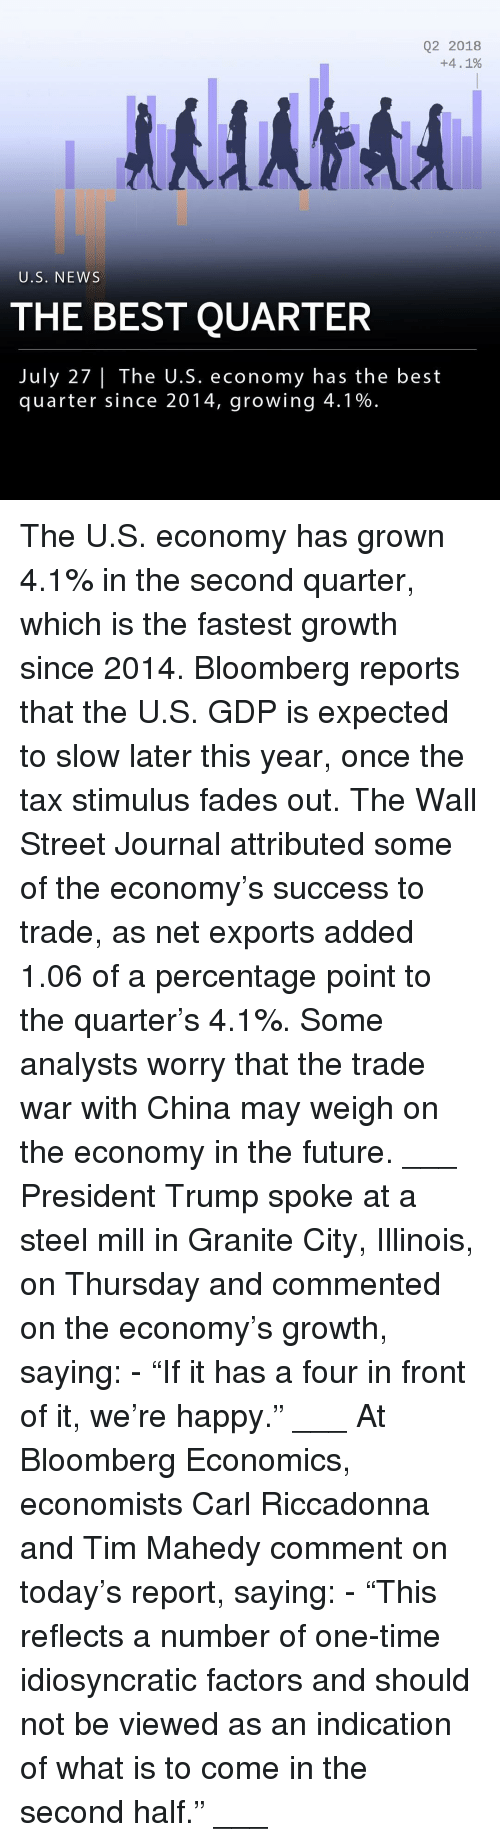 """Future, Memes, and News: Q2 2018  +4. 1%  U.S. NEWS  THE BEST QUARTER  July 27  The U.S. economy has the best  quarter since 2014, growing 4.1% The U.S. economy has grown 4.1% in the second quarter, which is the fastest growth since 2014. Bloomberg reports that the U.S. GDP is expected to slow later this year, once the tax stimulus fades out. The Wall Street Journal attributed some of the economy's success to trade, as net exports added 1.06 of a percentage point to the quarter's 4.1%. Some analysts worry that the trade war with China may weigh on the economy in the future. ___ President Trump spoke at a steel mill in Granite City, Illinois, on Thursday and commented on the economy's growth, saying: - """"If it has a four in front of it, we're happy."""" ___ At Bloomberg Economics, economists Carl Riccadonna and Tim Mahedy comment on today's report, saying: - """"This reflects a number of one-time idiosyncratic factors and should not be viewed as an indication of what is to come in the second half."""" ___"""